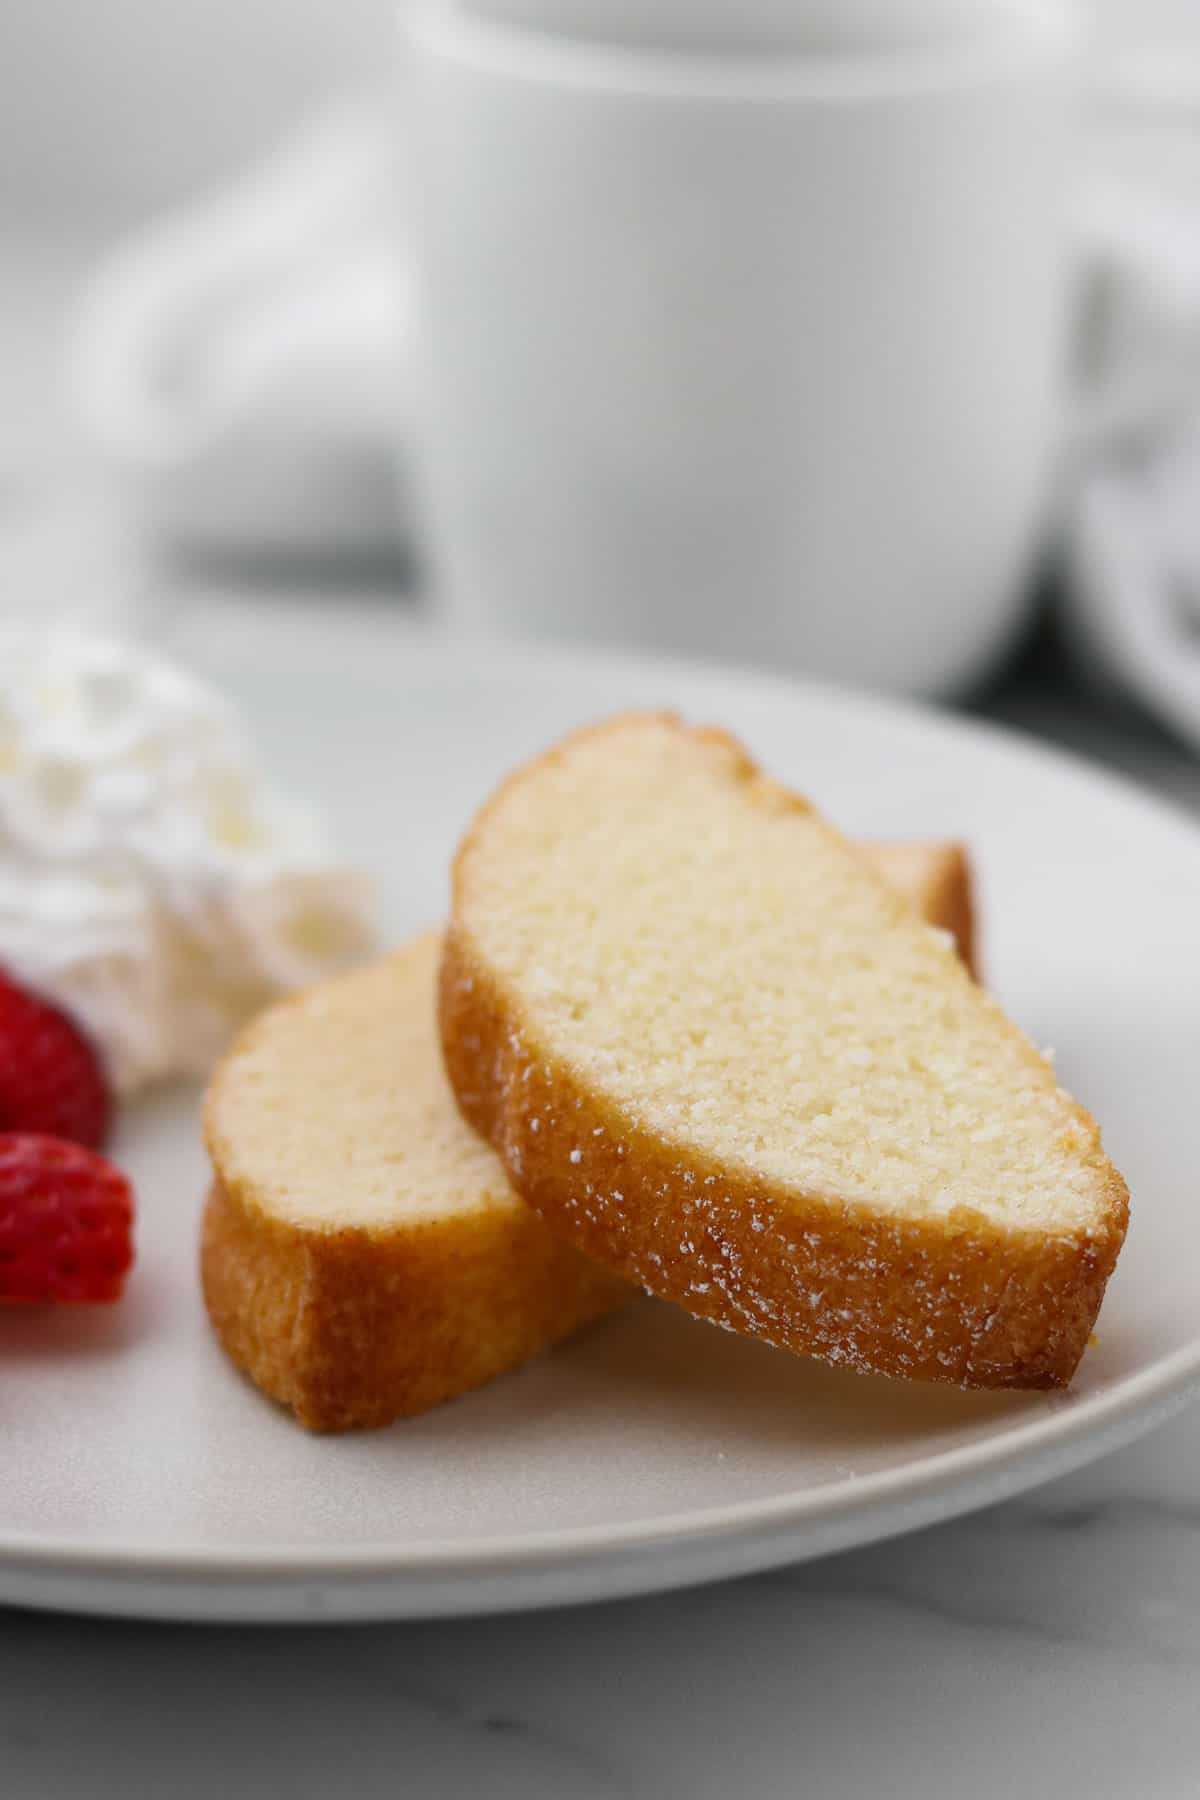 Two slices of Swedish Almond Cake on a plate next to strawberries and whipped cream.